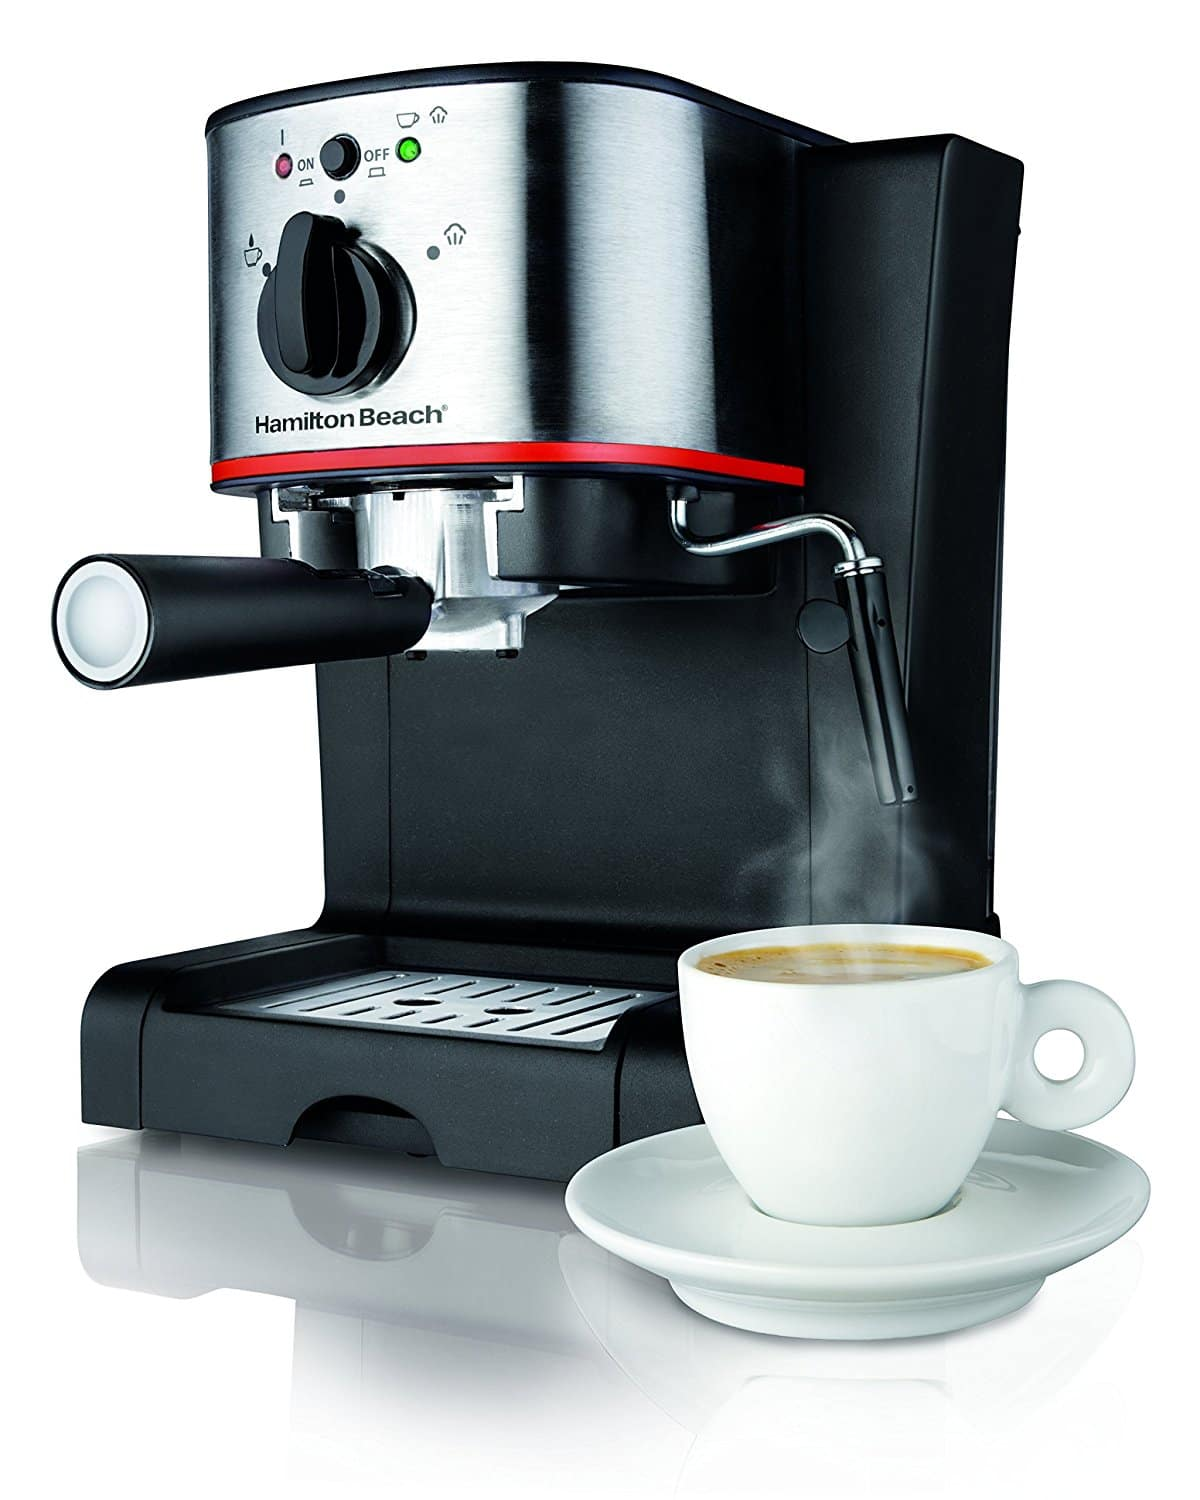 Hamilton Beach Espresso Machine $44 + Free Shipping